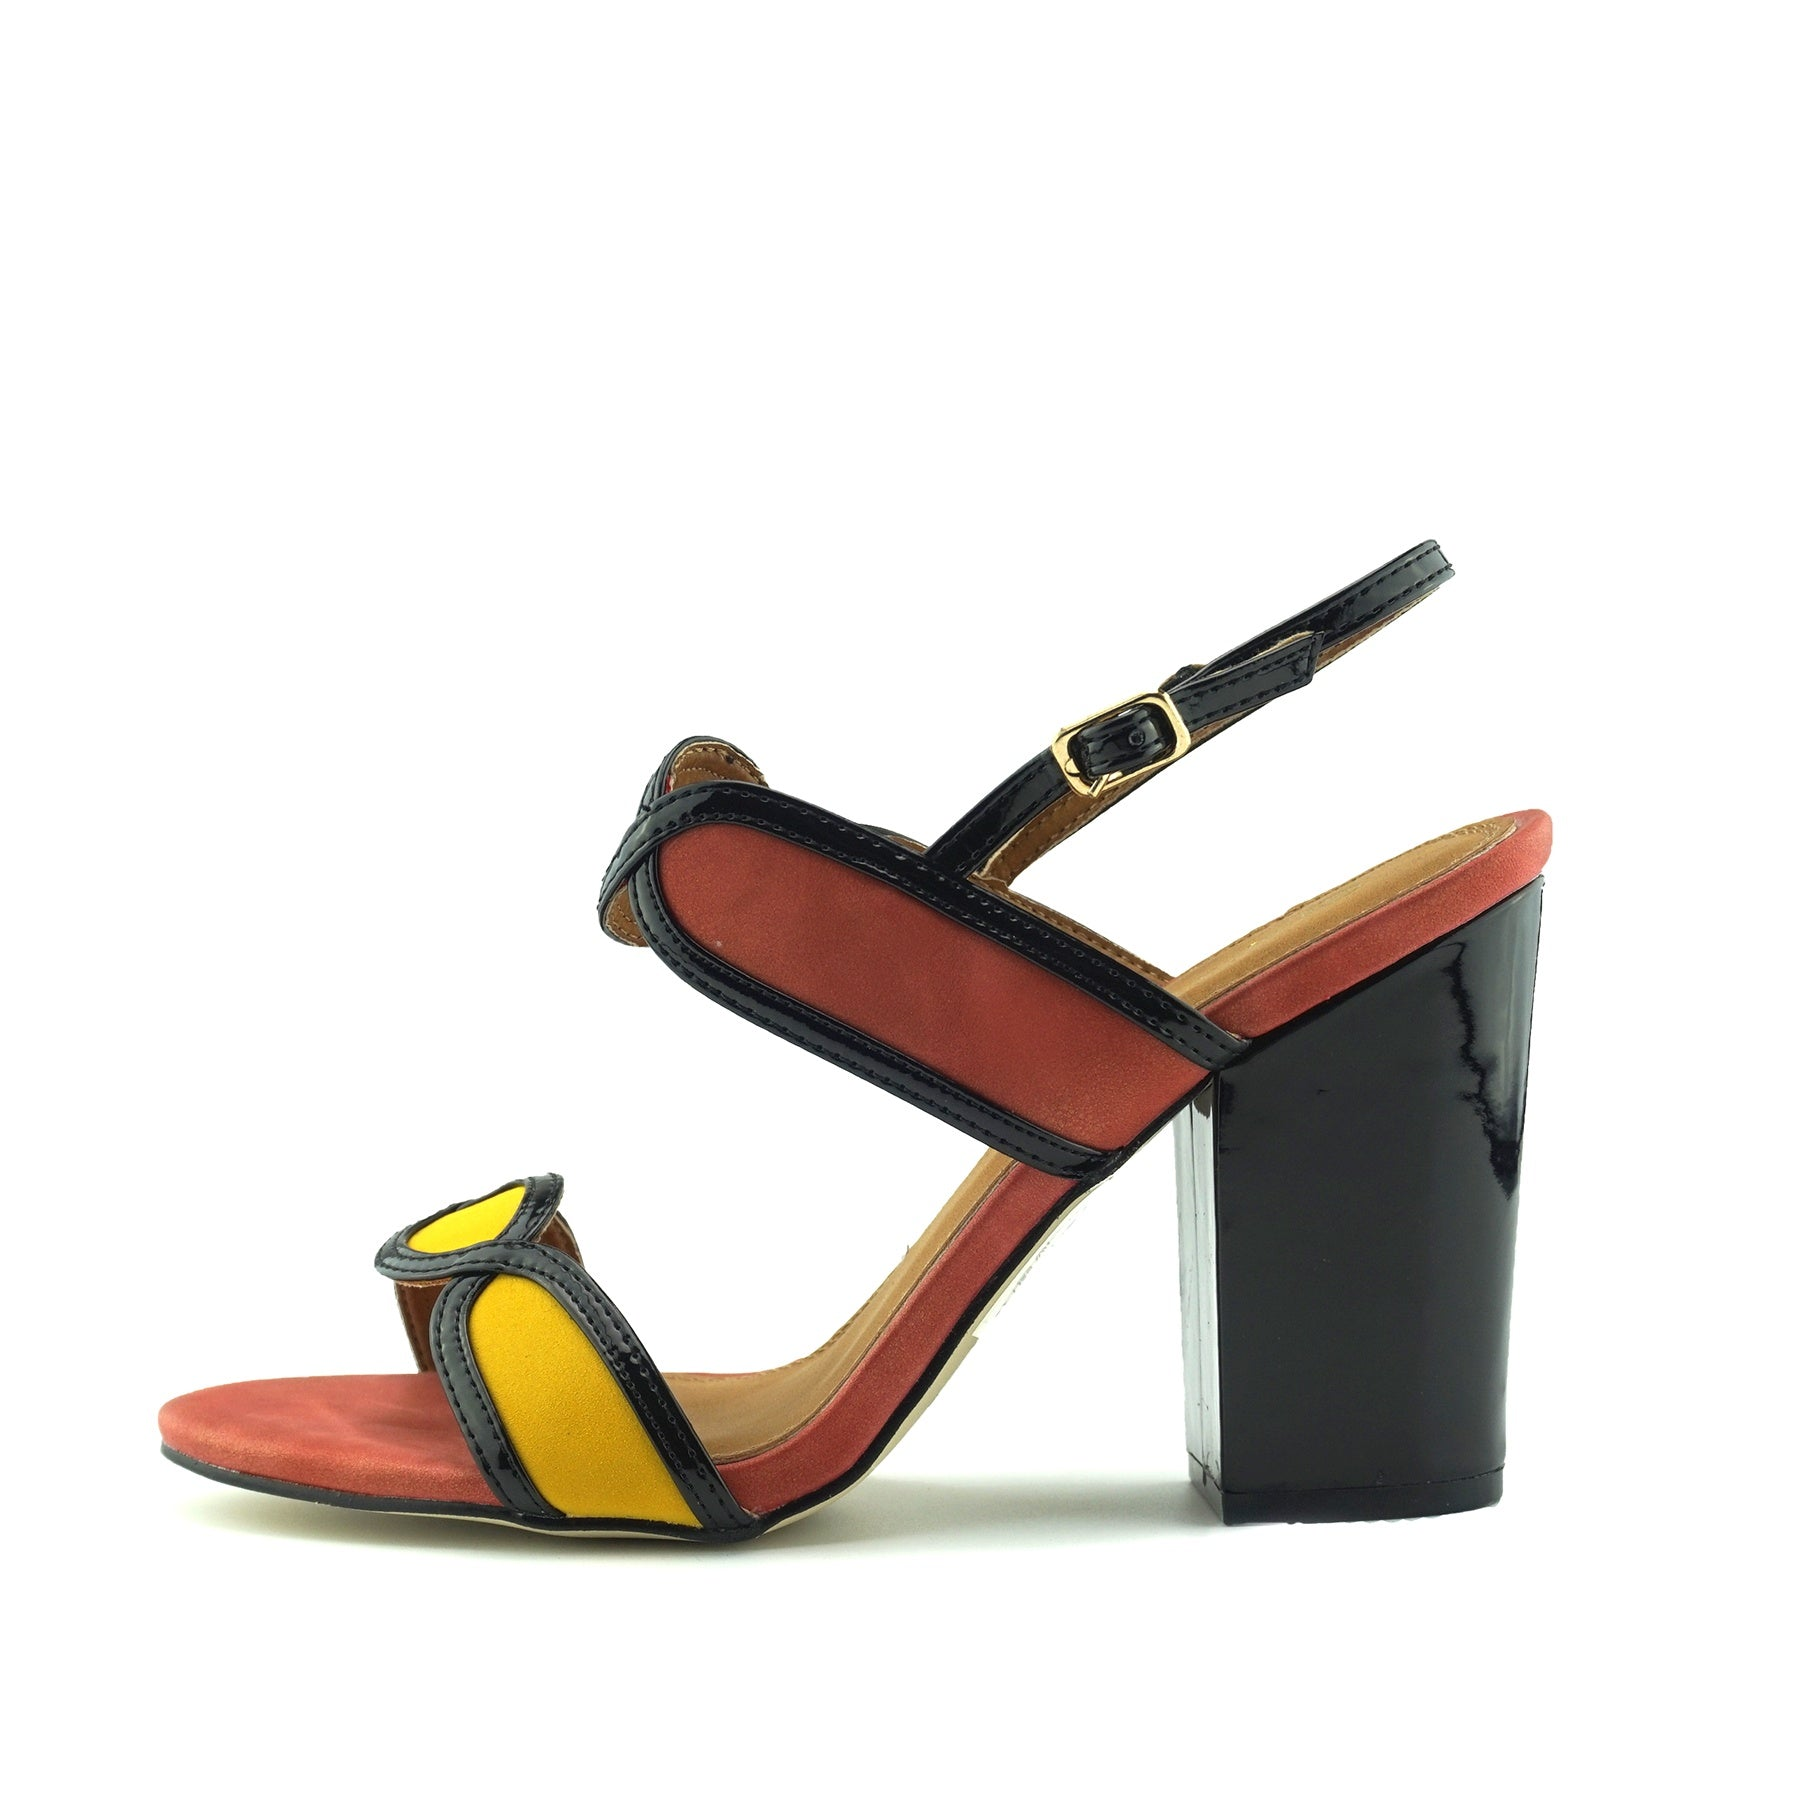 aac76d84cd3 Edie Retro Geo Block Heel Sandals - Orange - Kickfootwear